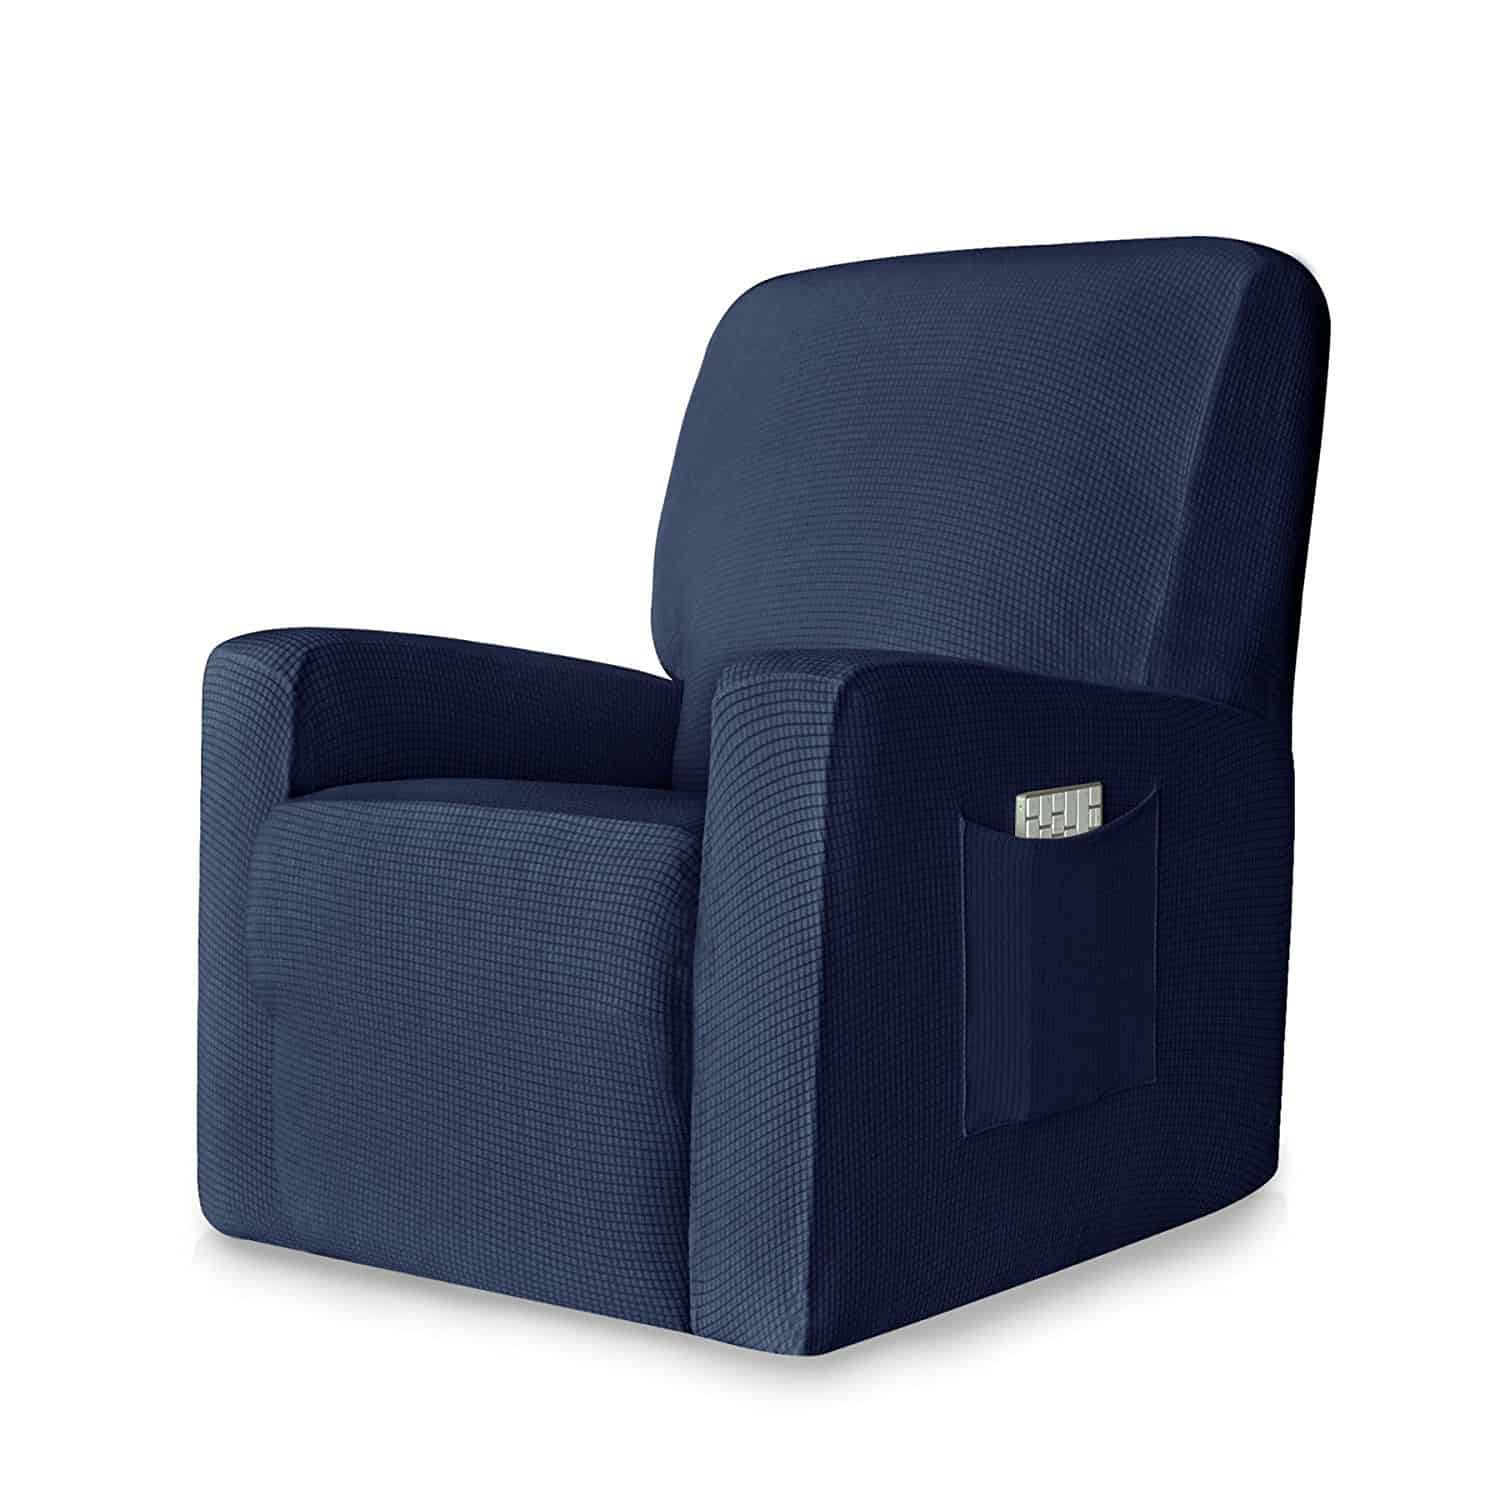 blue recliner chair covers blames high tray 19 large comfy chairs 2018